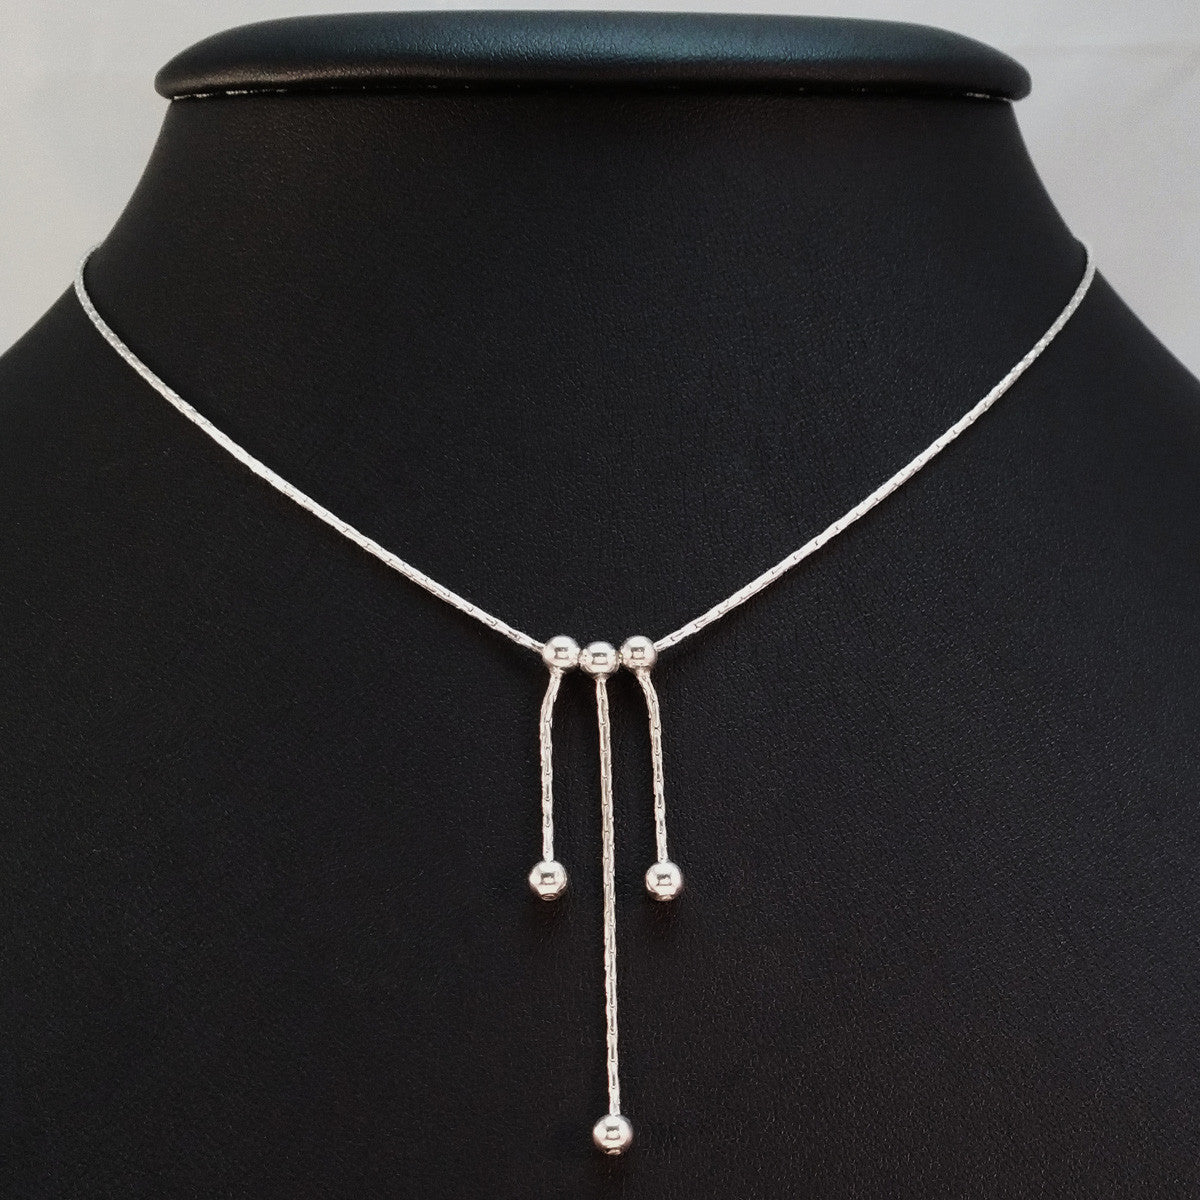 925 STERLING SILVER NECKLACE WITH THREE FLOATING DROPS.